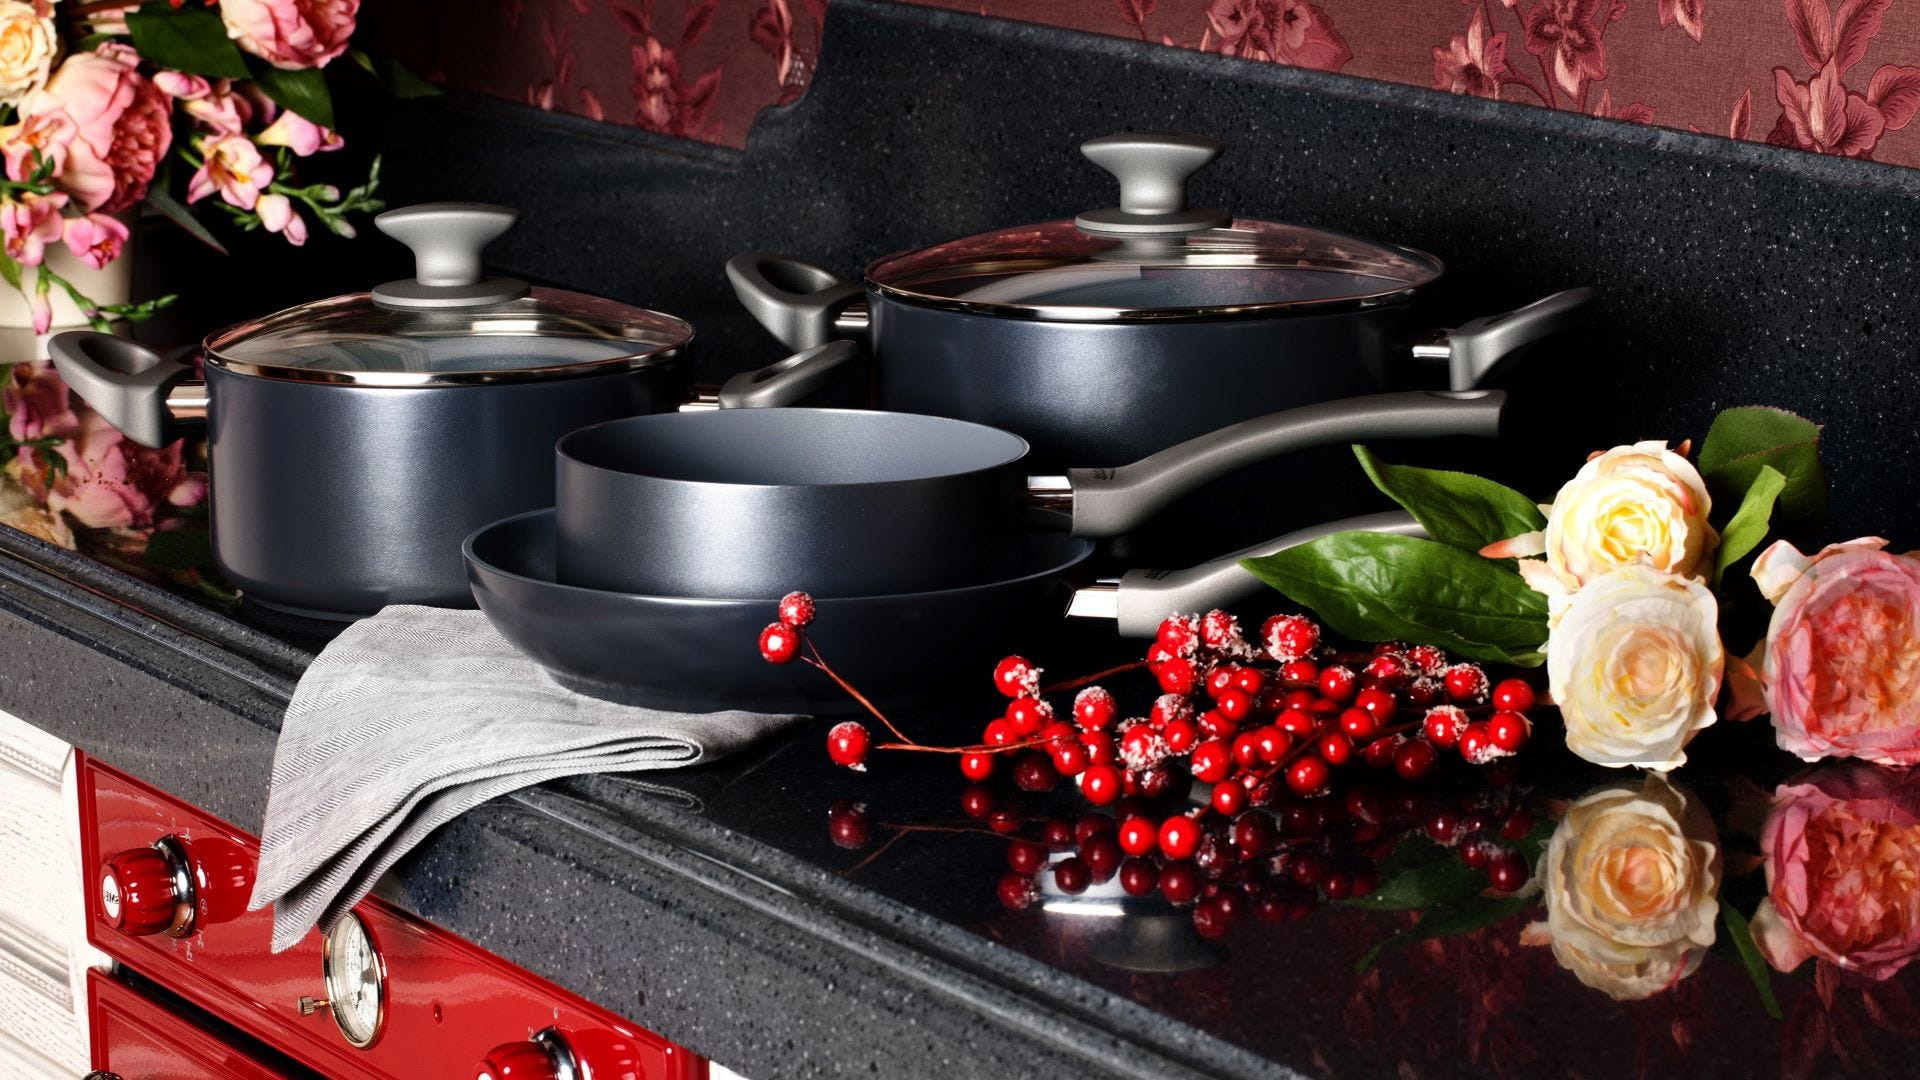 Gray pots and pans on a stove in a red kitchen.